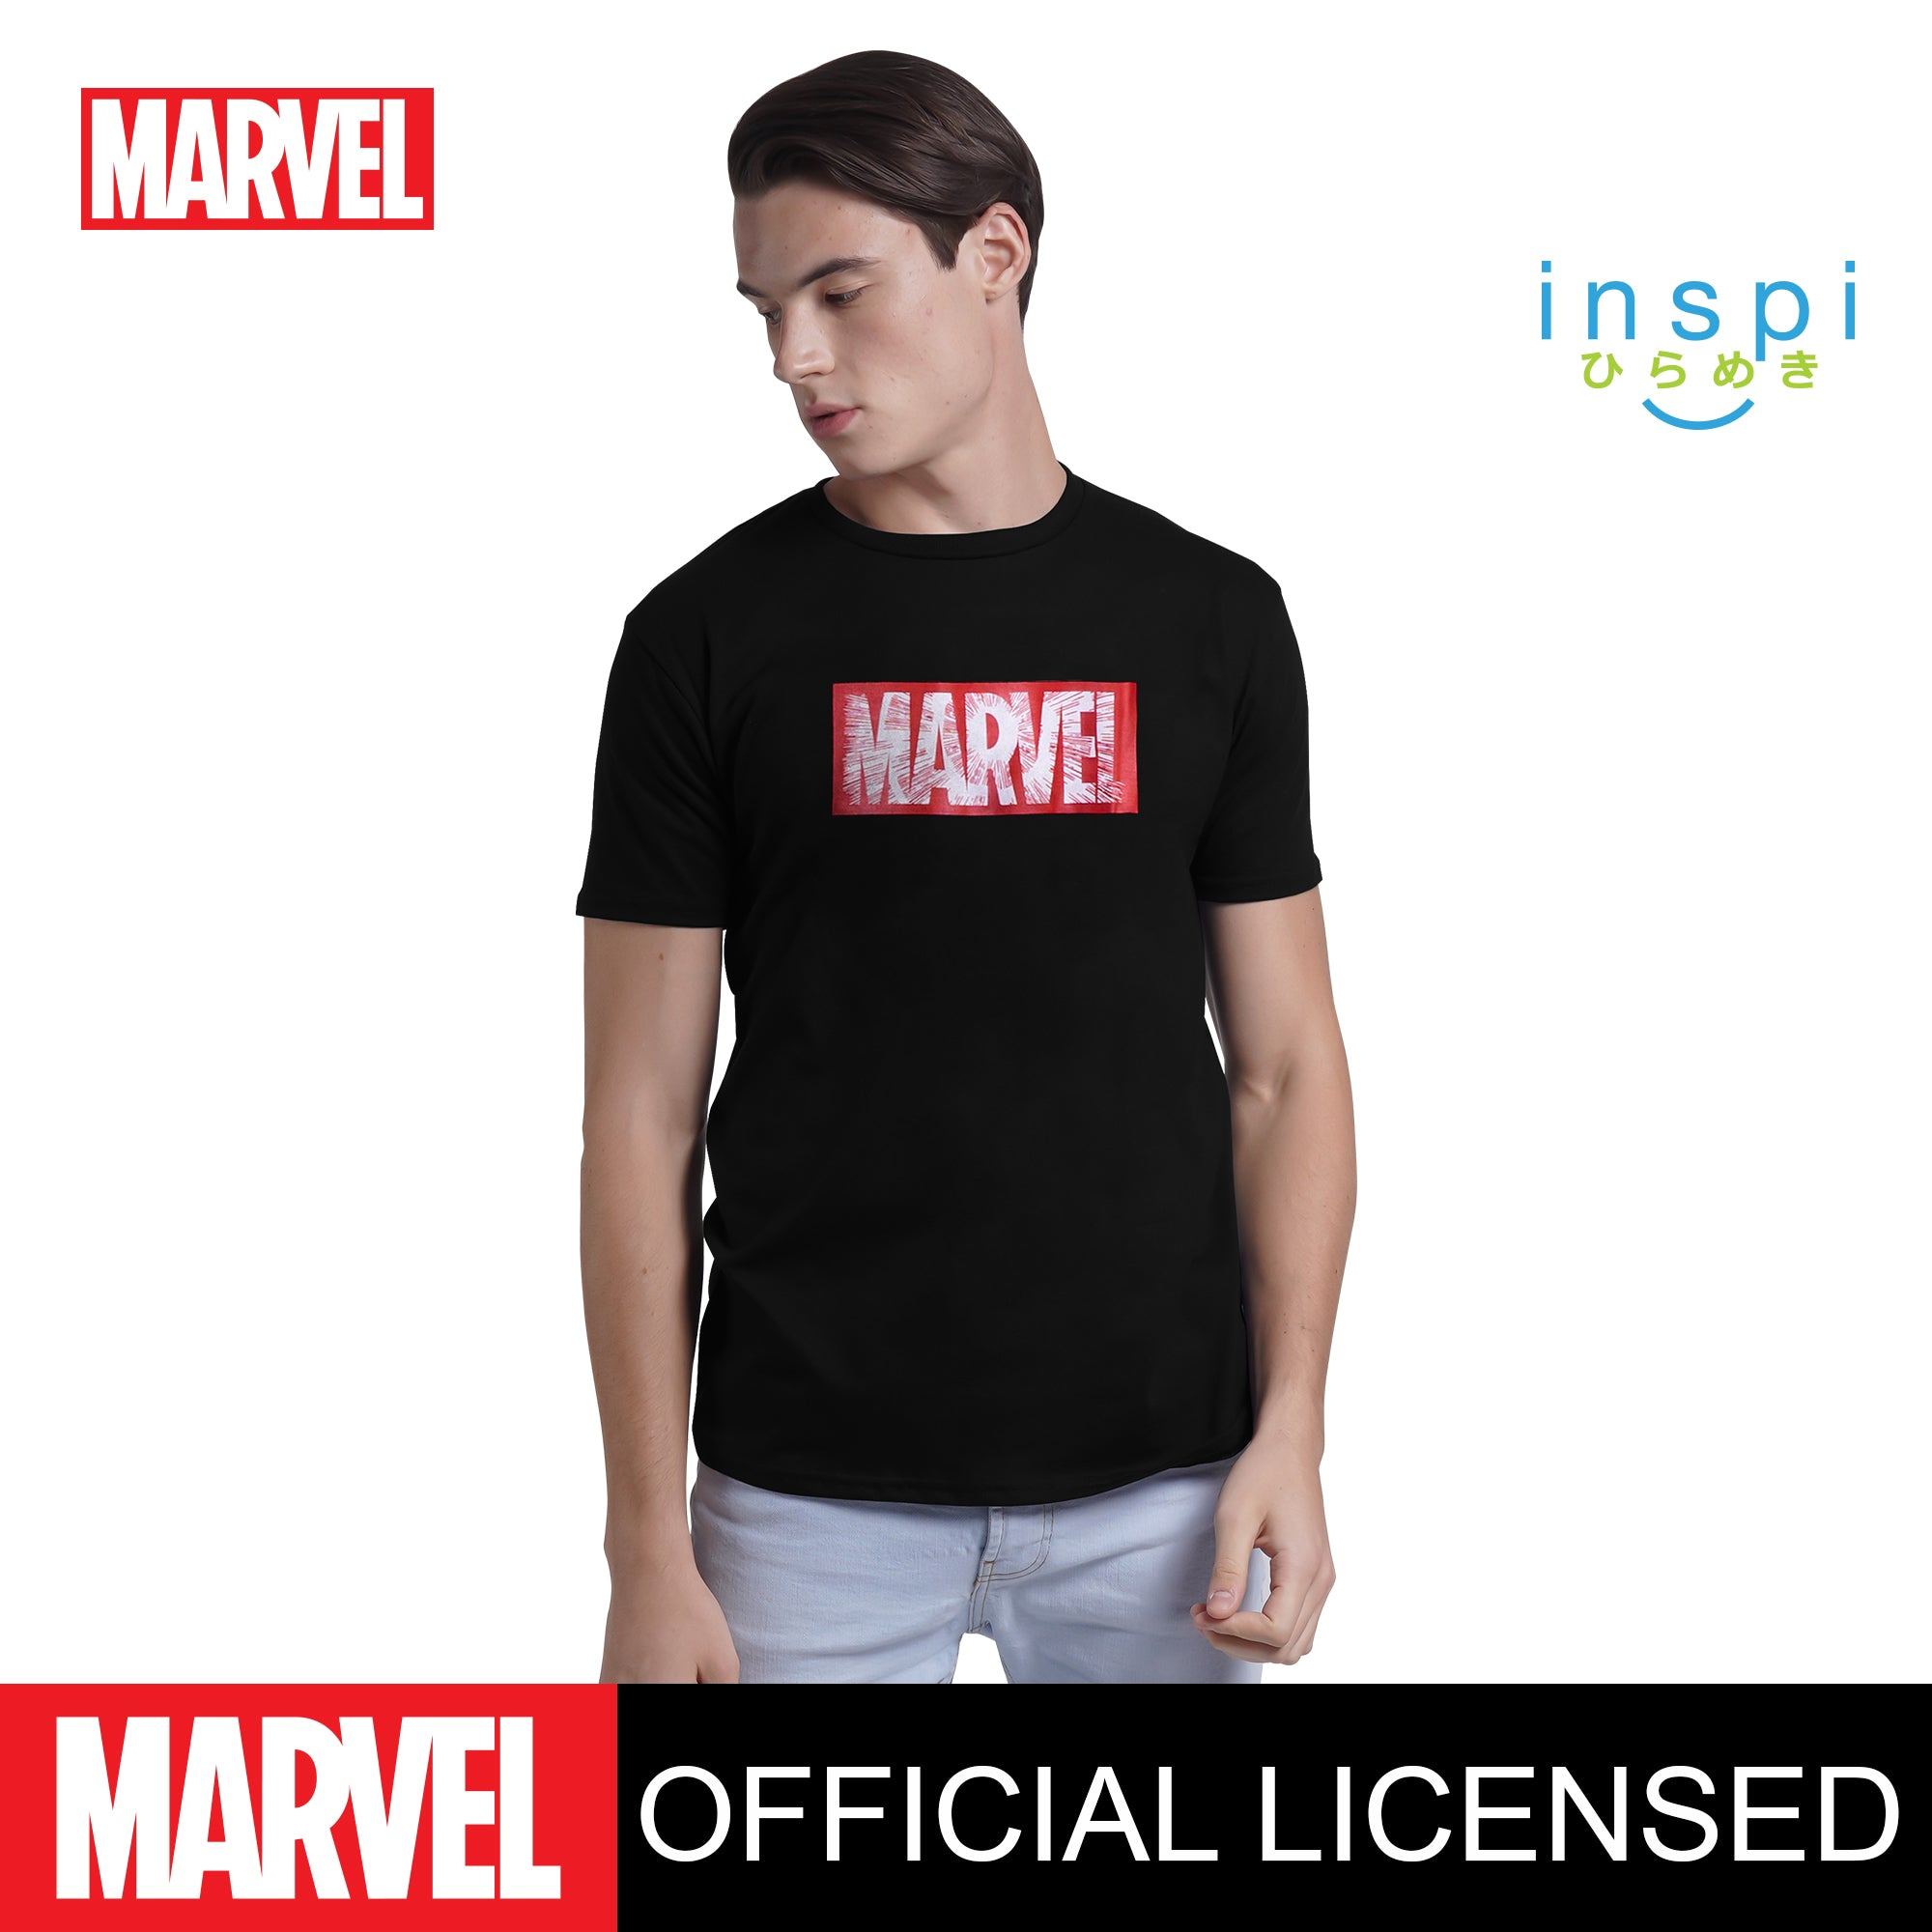 Marvel Logo Zoom Graphic Tshirt in Black for Men and for Women Inspi Shirt